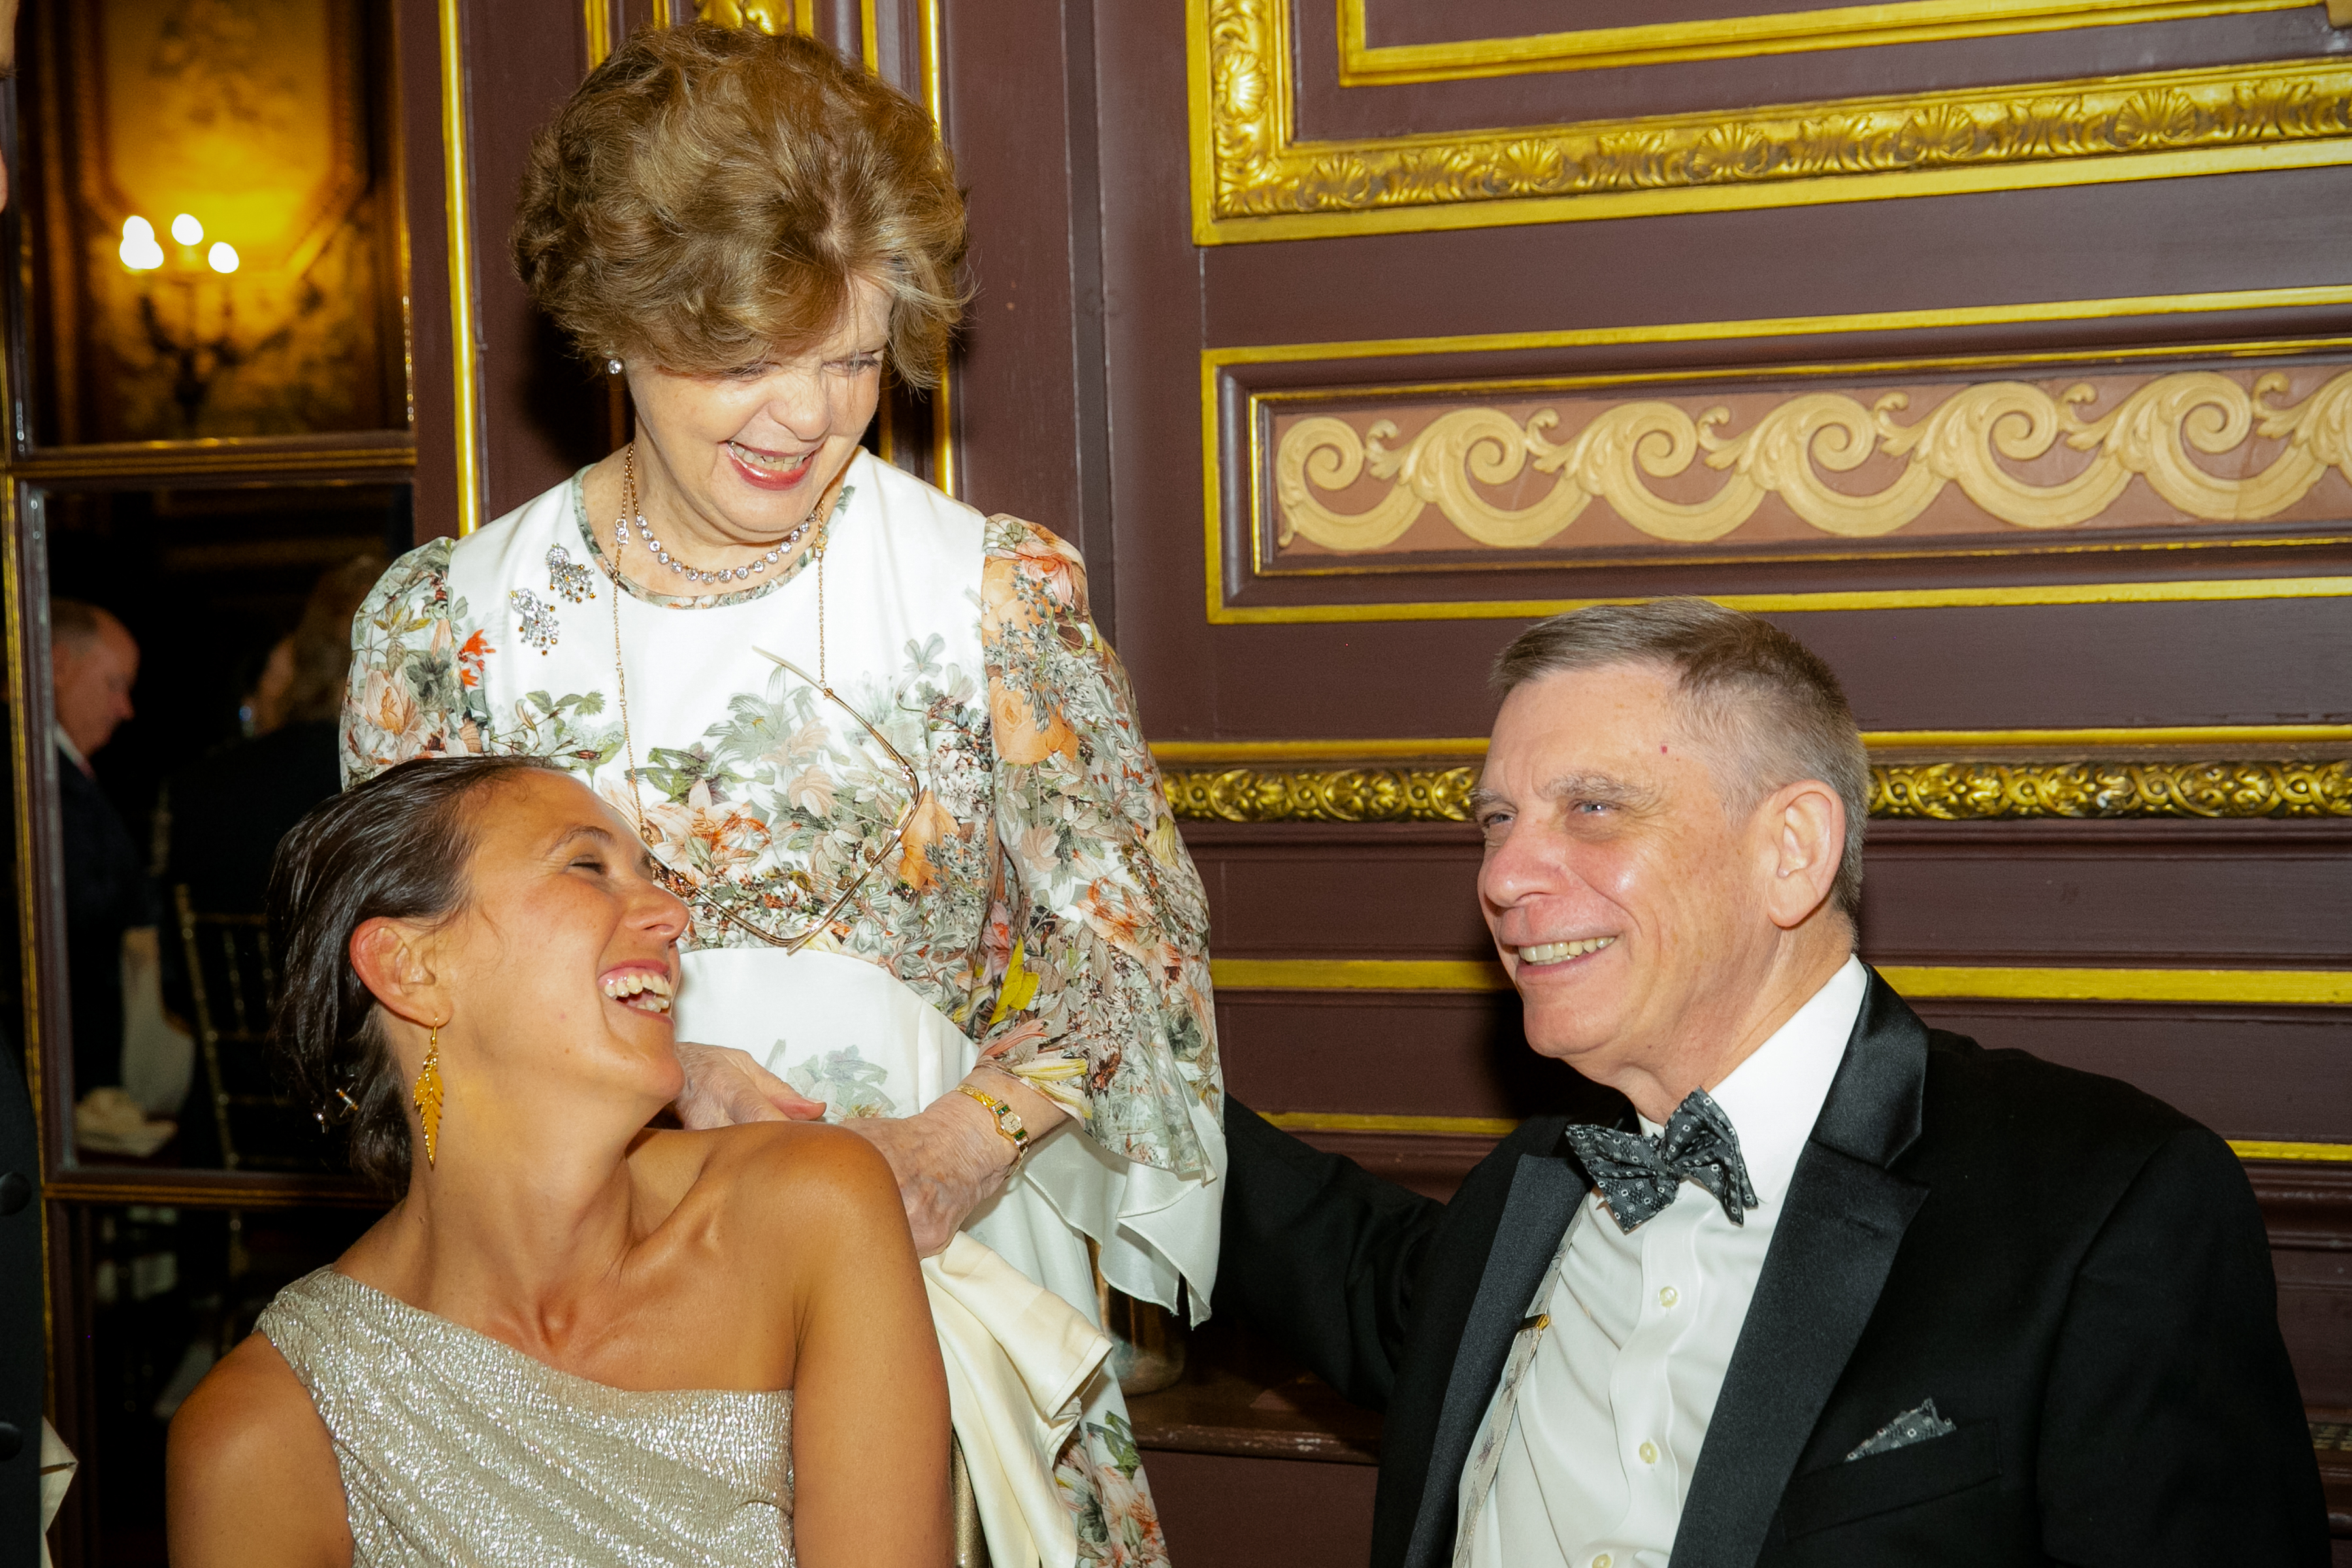 Dr. Legato standing and smiling with man and woman at gala